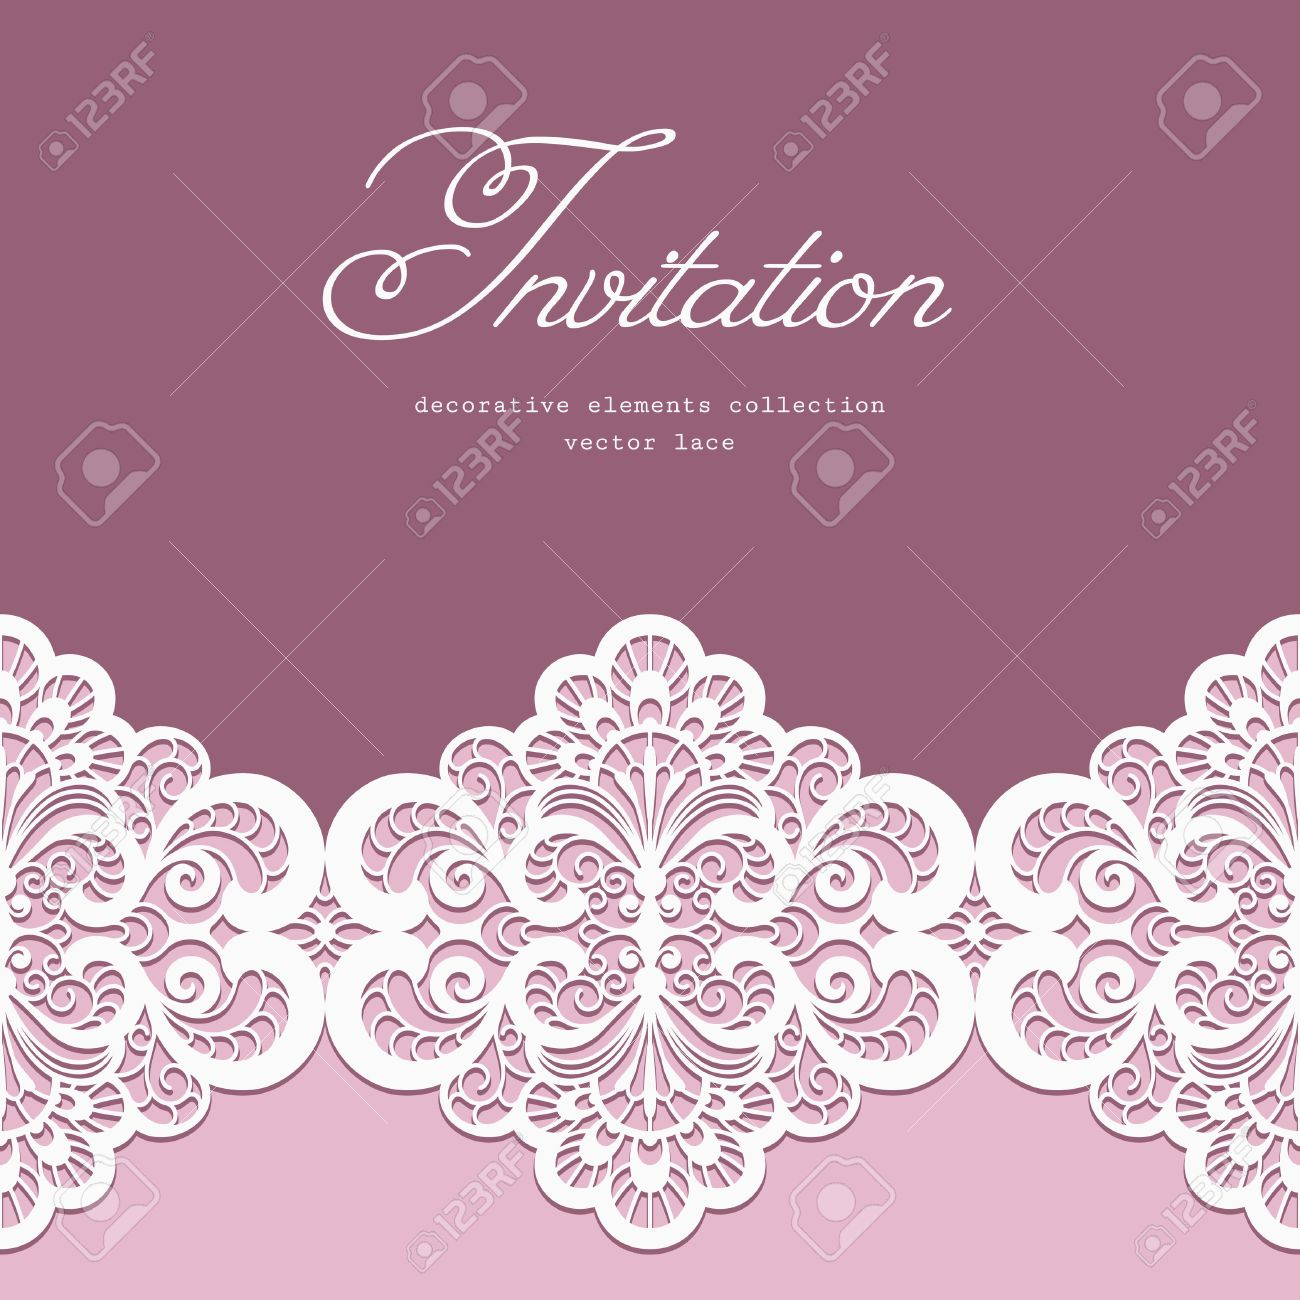 Elegant Greeting Card Or Wedding Invitation Template With Lace